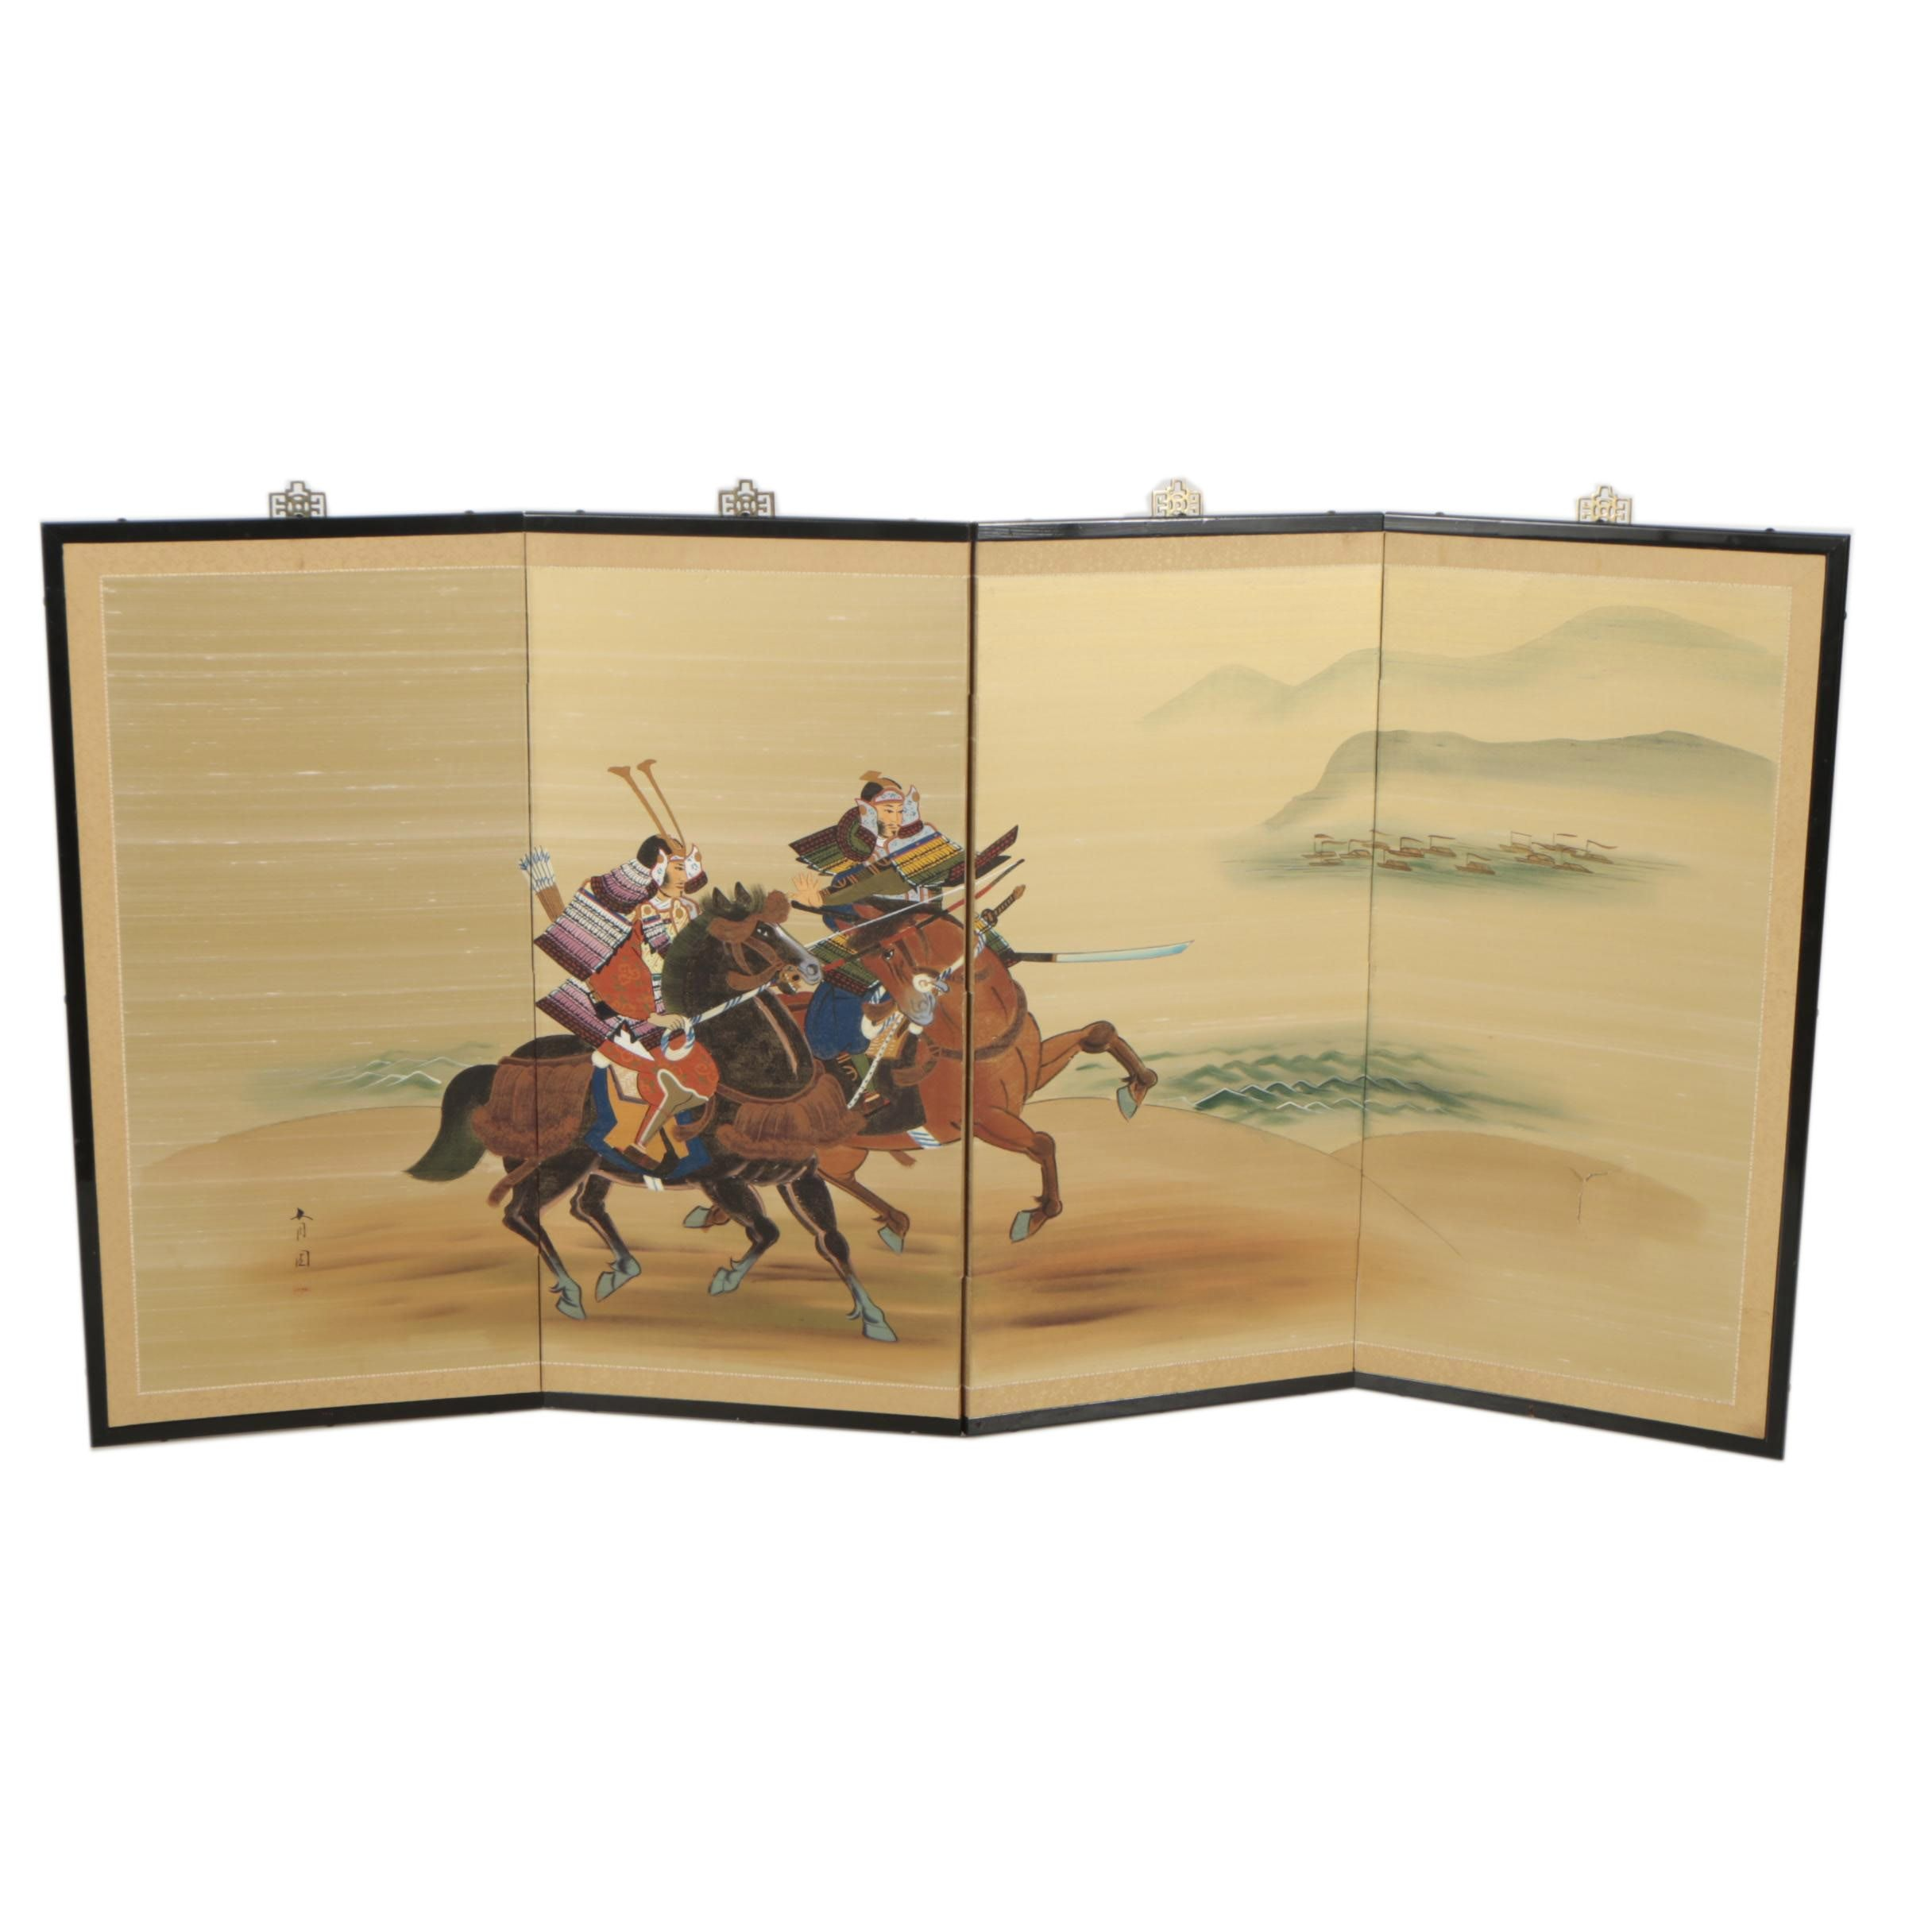 East Asian Style Gouache Painting on Folding Screen